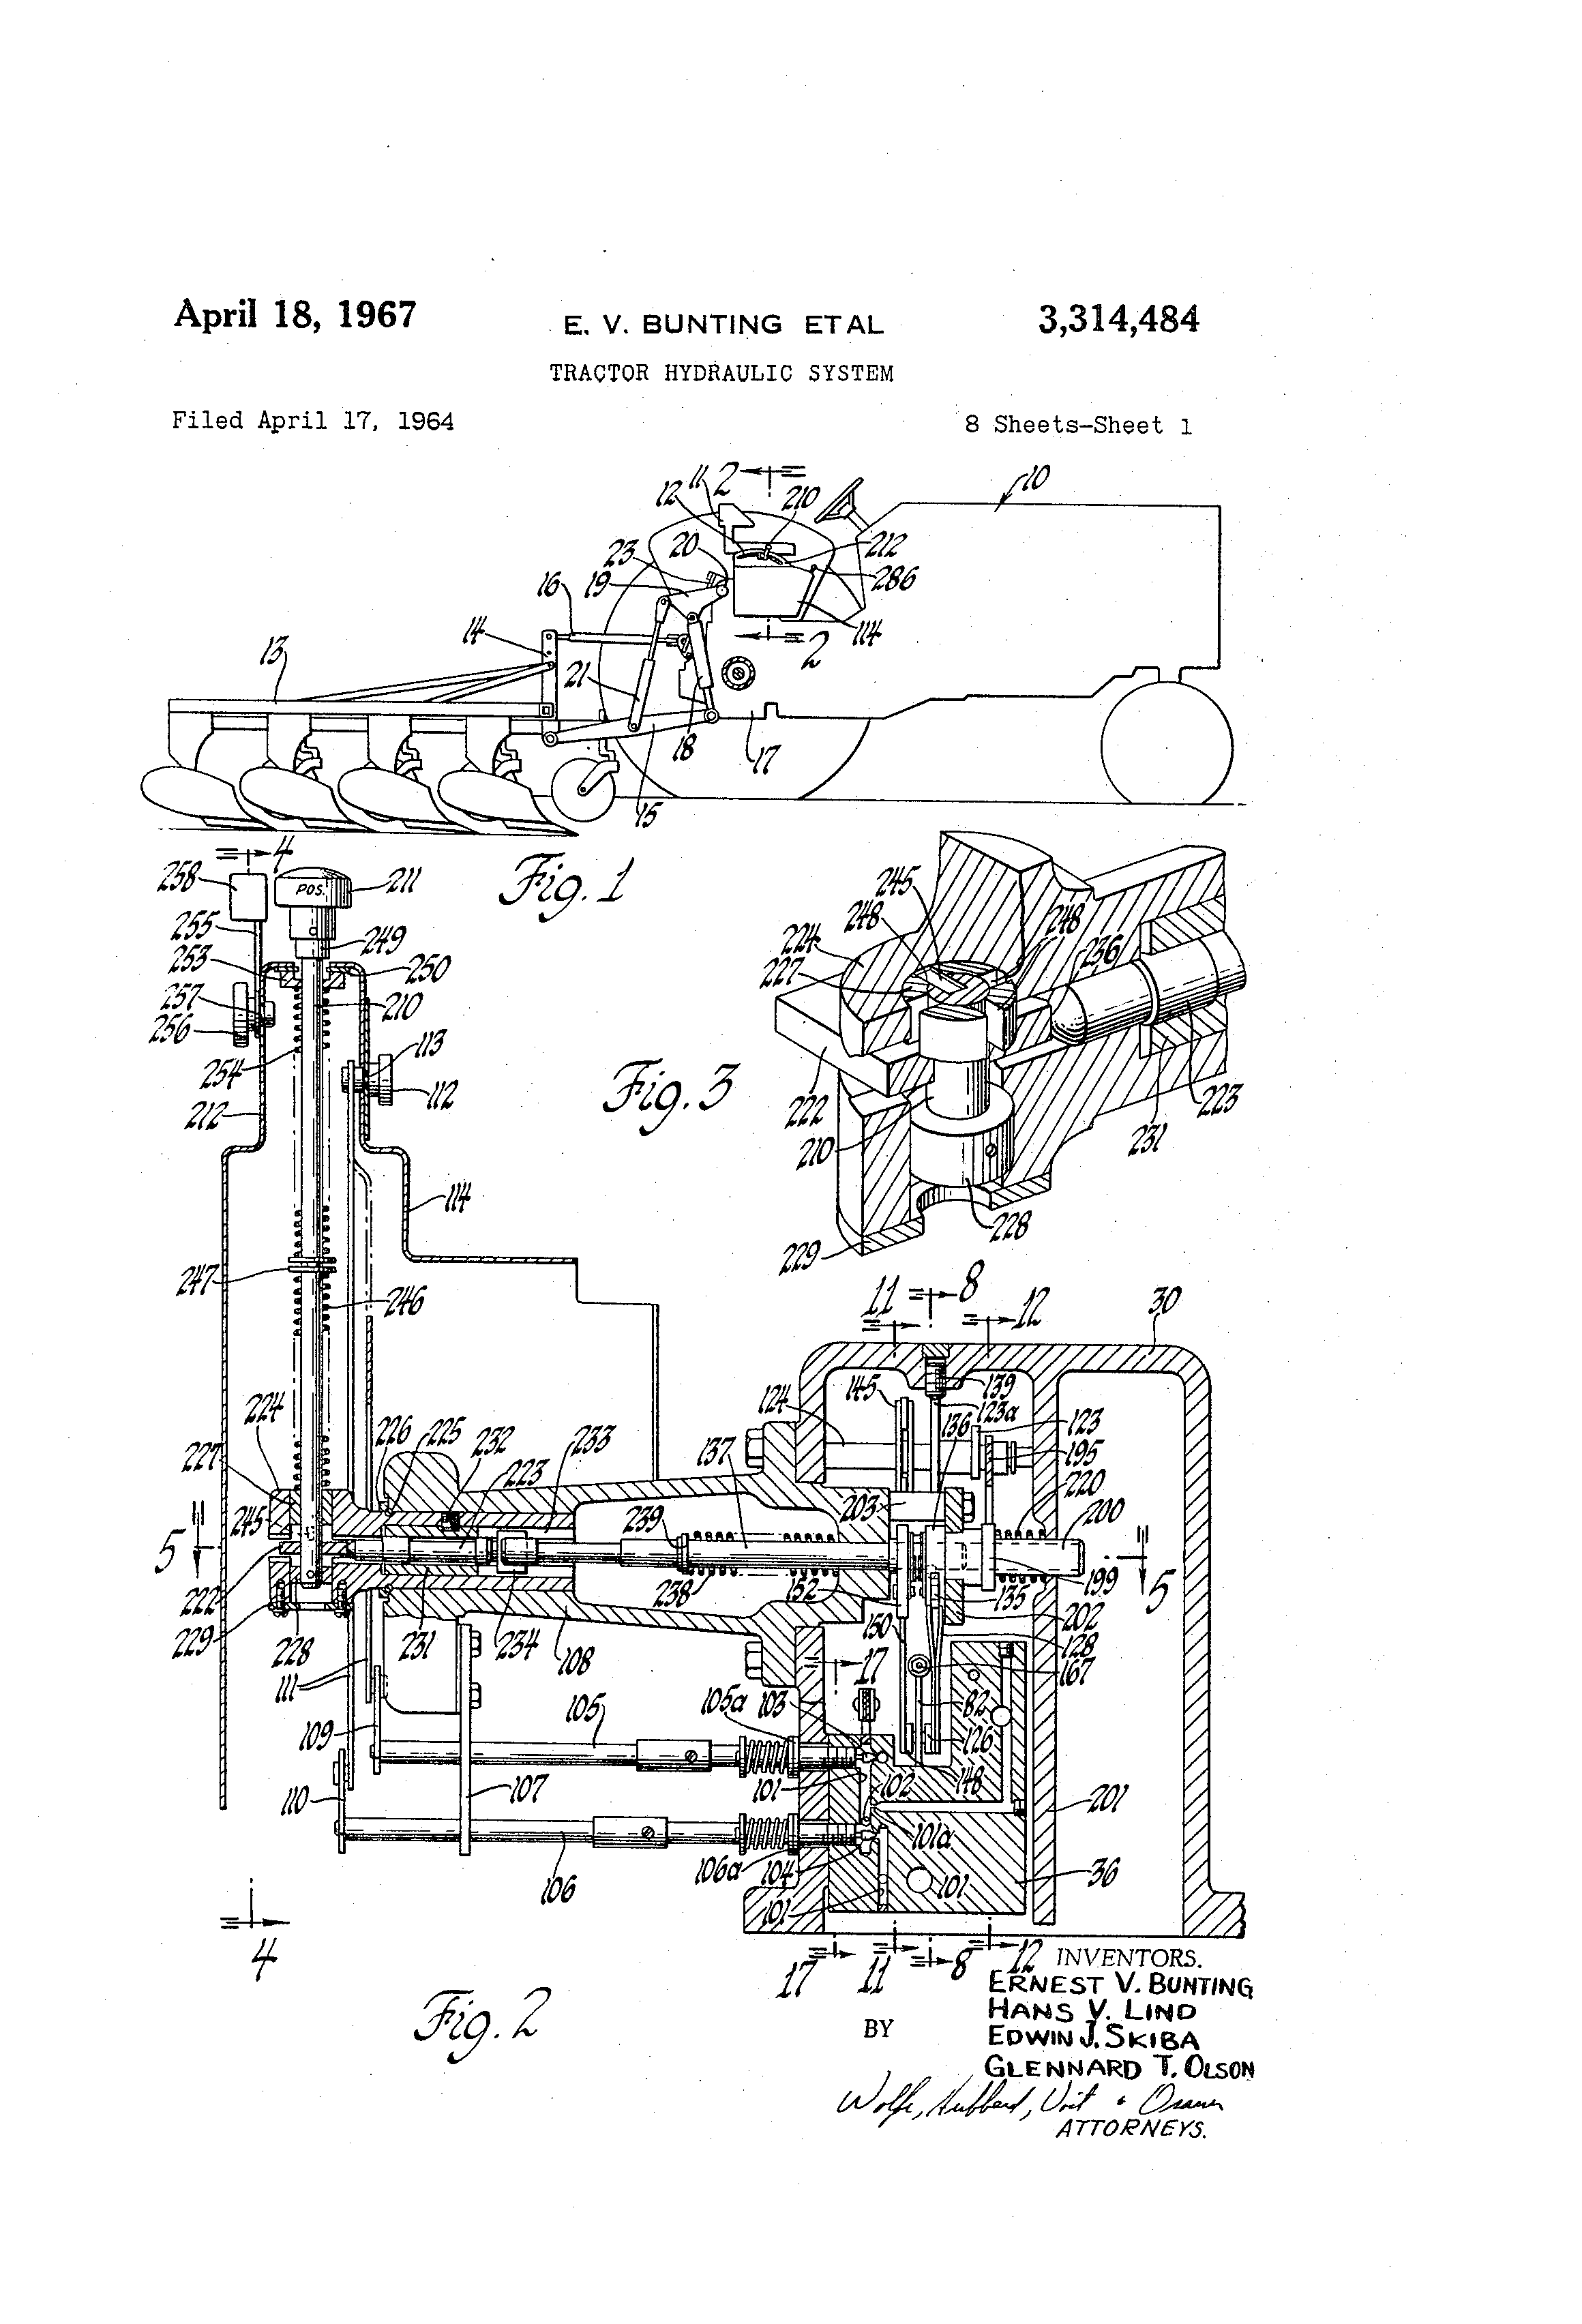 Hydraulic System Drawing : Patent us tractor hydraulic system patenty google